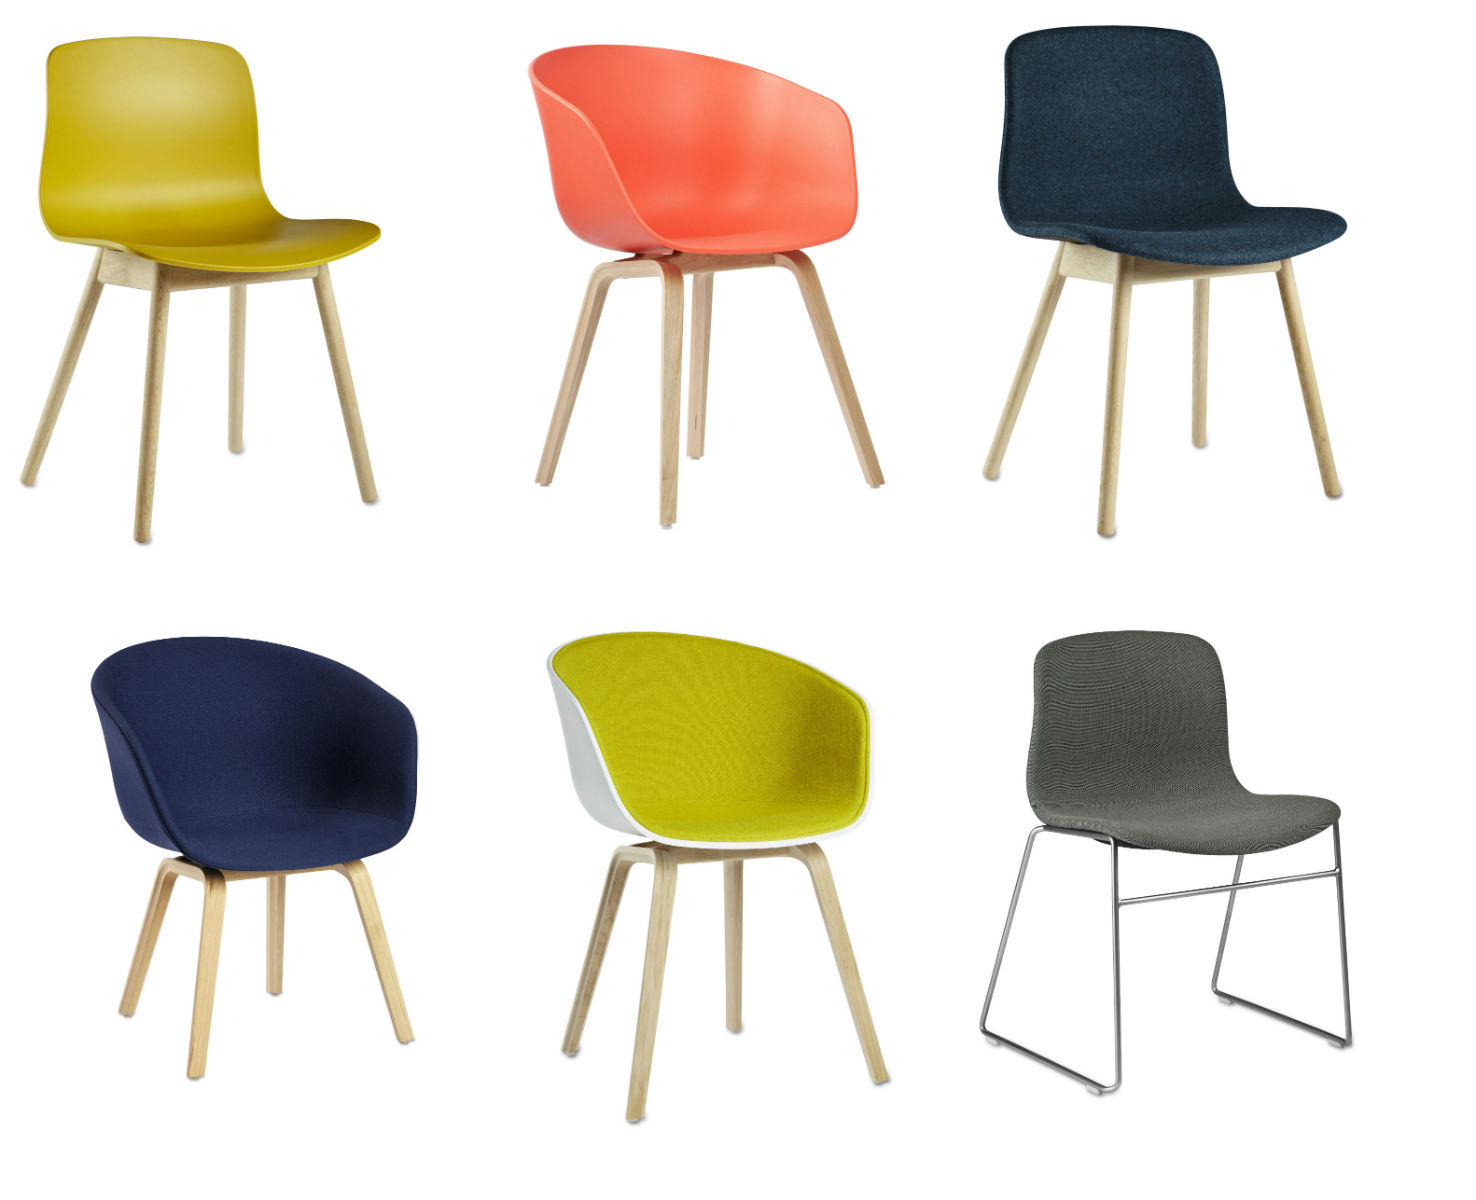 Chaises-About-A-Chair-Hay-couleurs